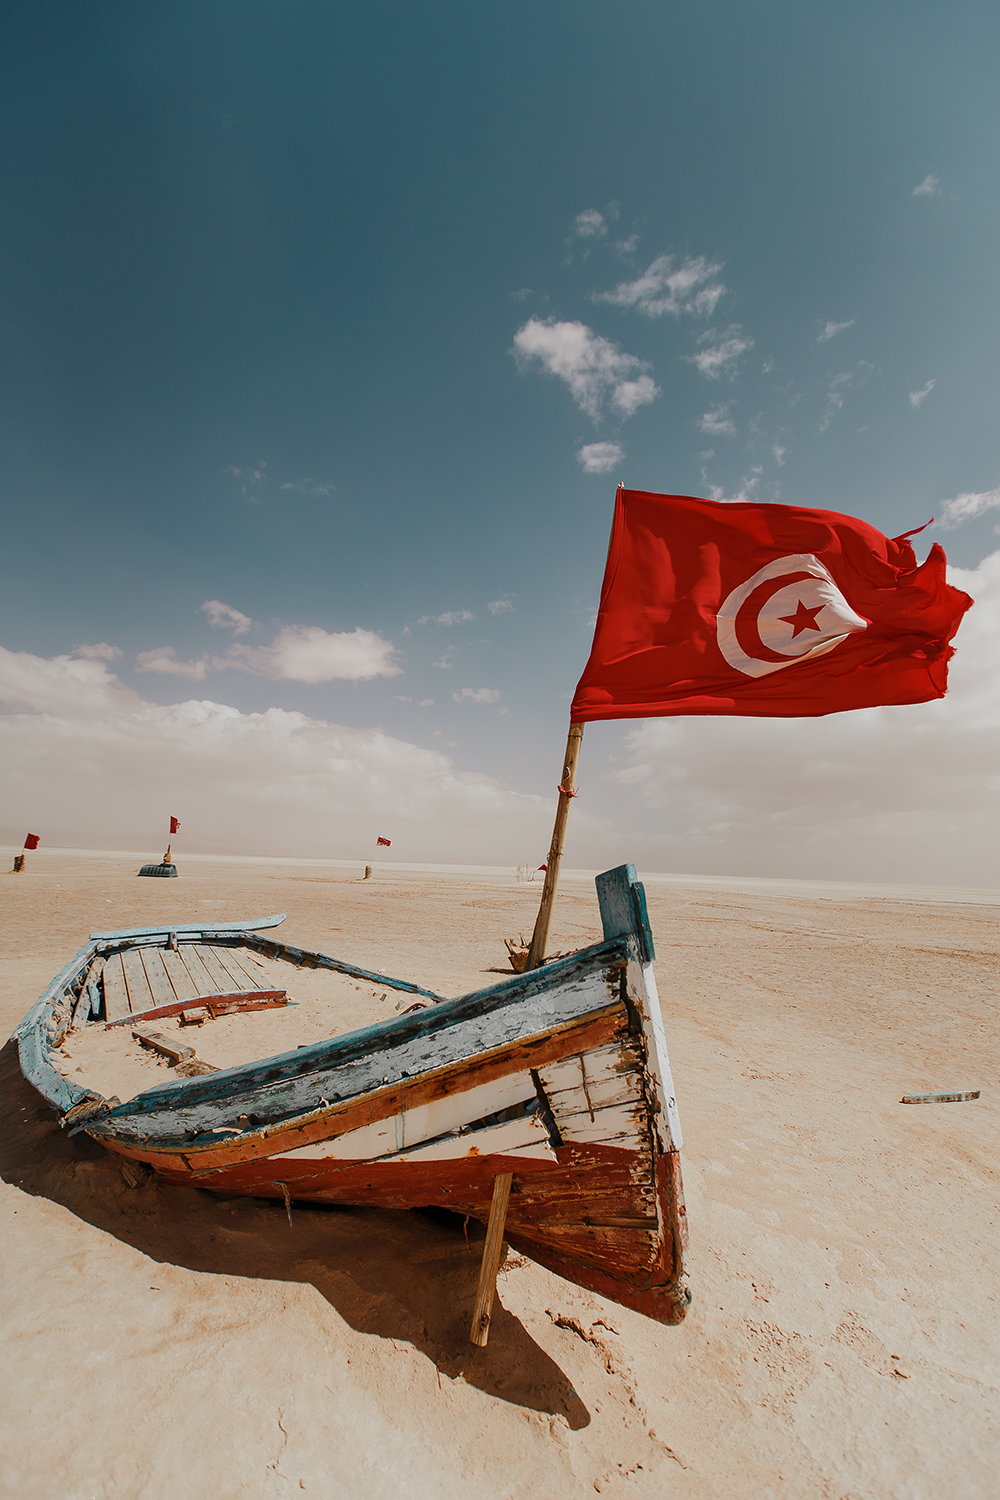 SN2_0421-sophie-narses-photographe-Tunisie-Voyage-book-shooting-geneve-mariage-suisse-famille-animaux-tirages-art-cours-photo-paysages-desert